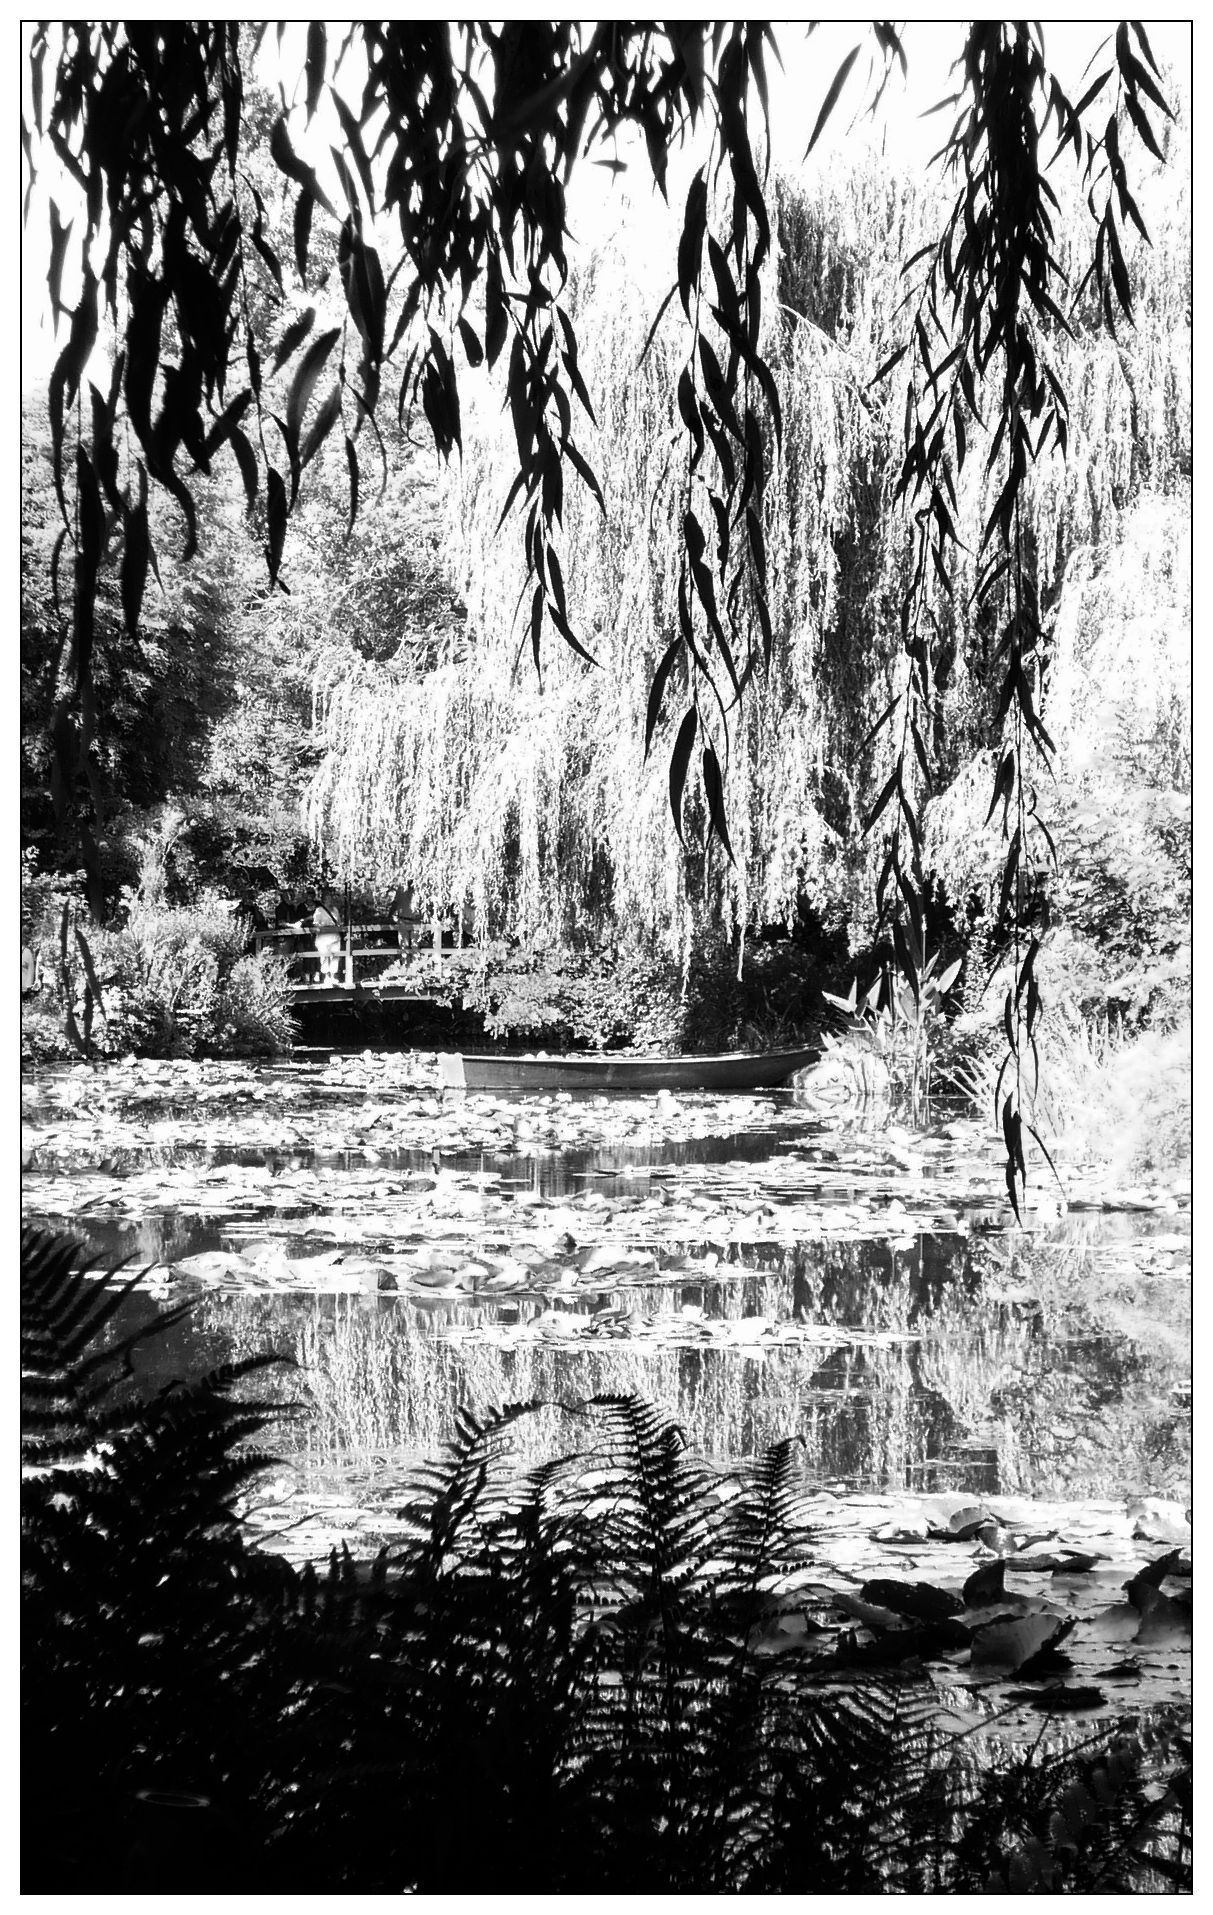 Le saule pleureur Claude Monet's garden at Giverny By yama-bato ©yama-bato More here